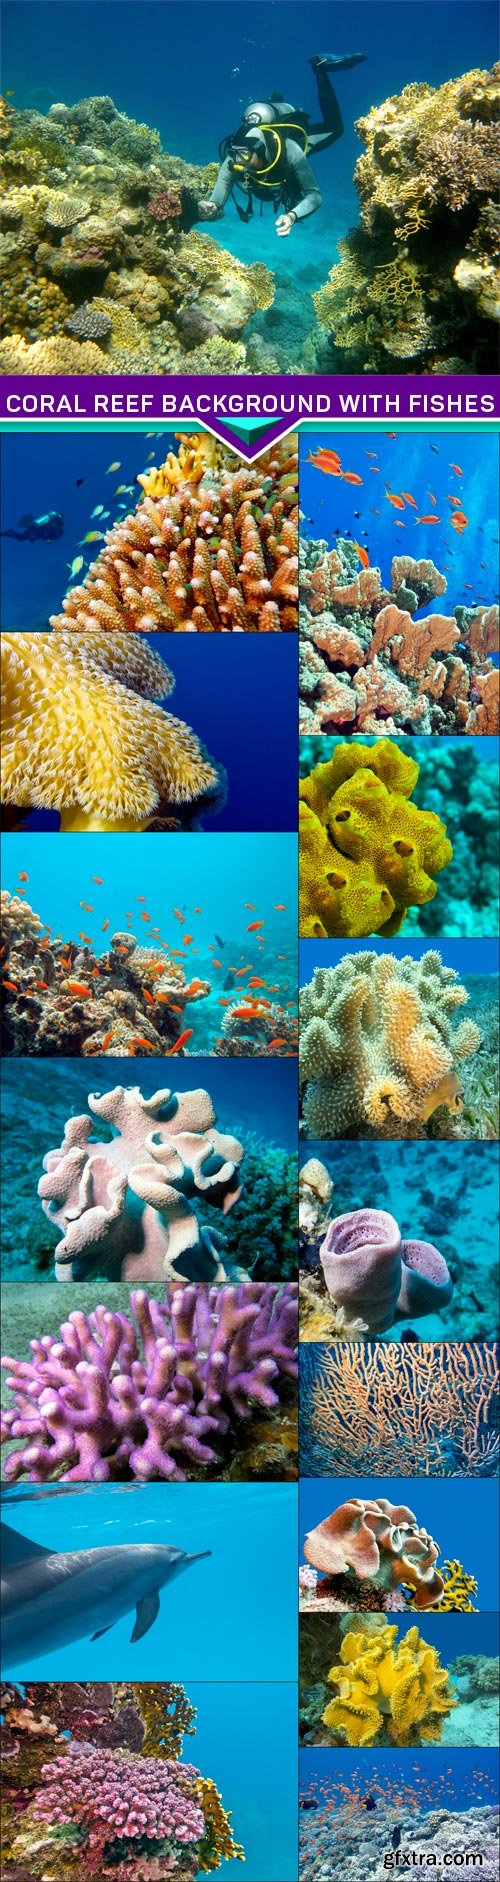 Coral reef background with fishes and diving 16x JPEG